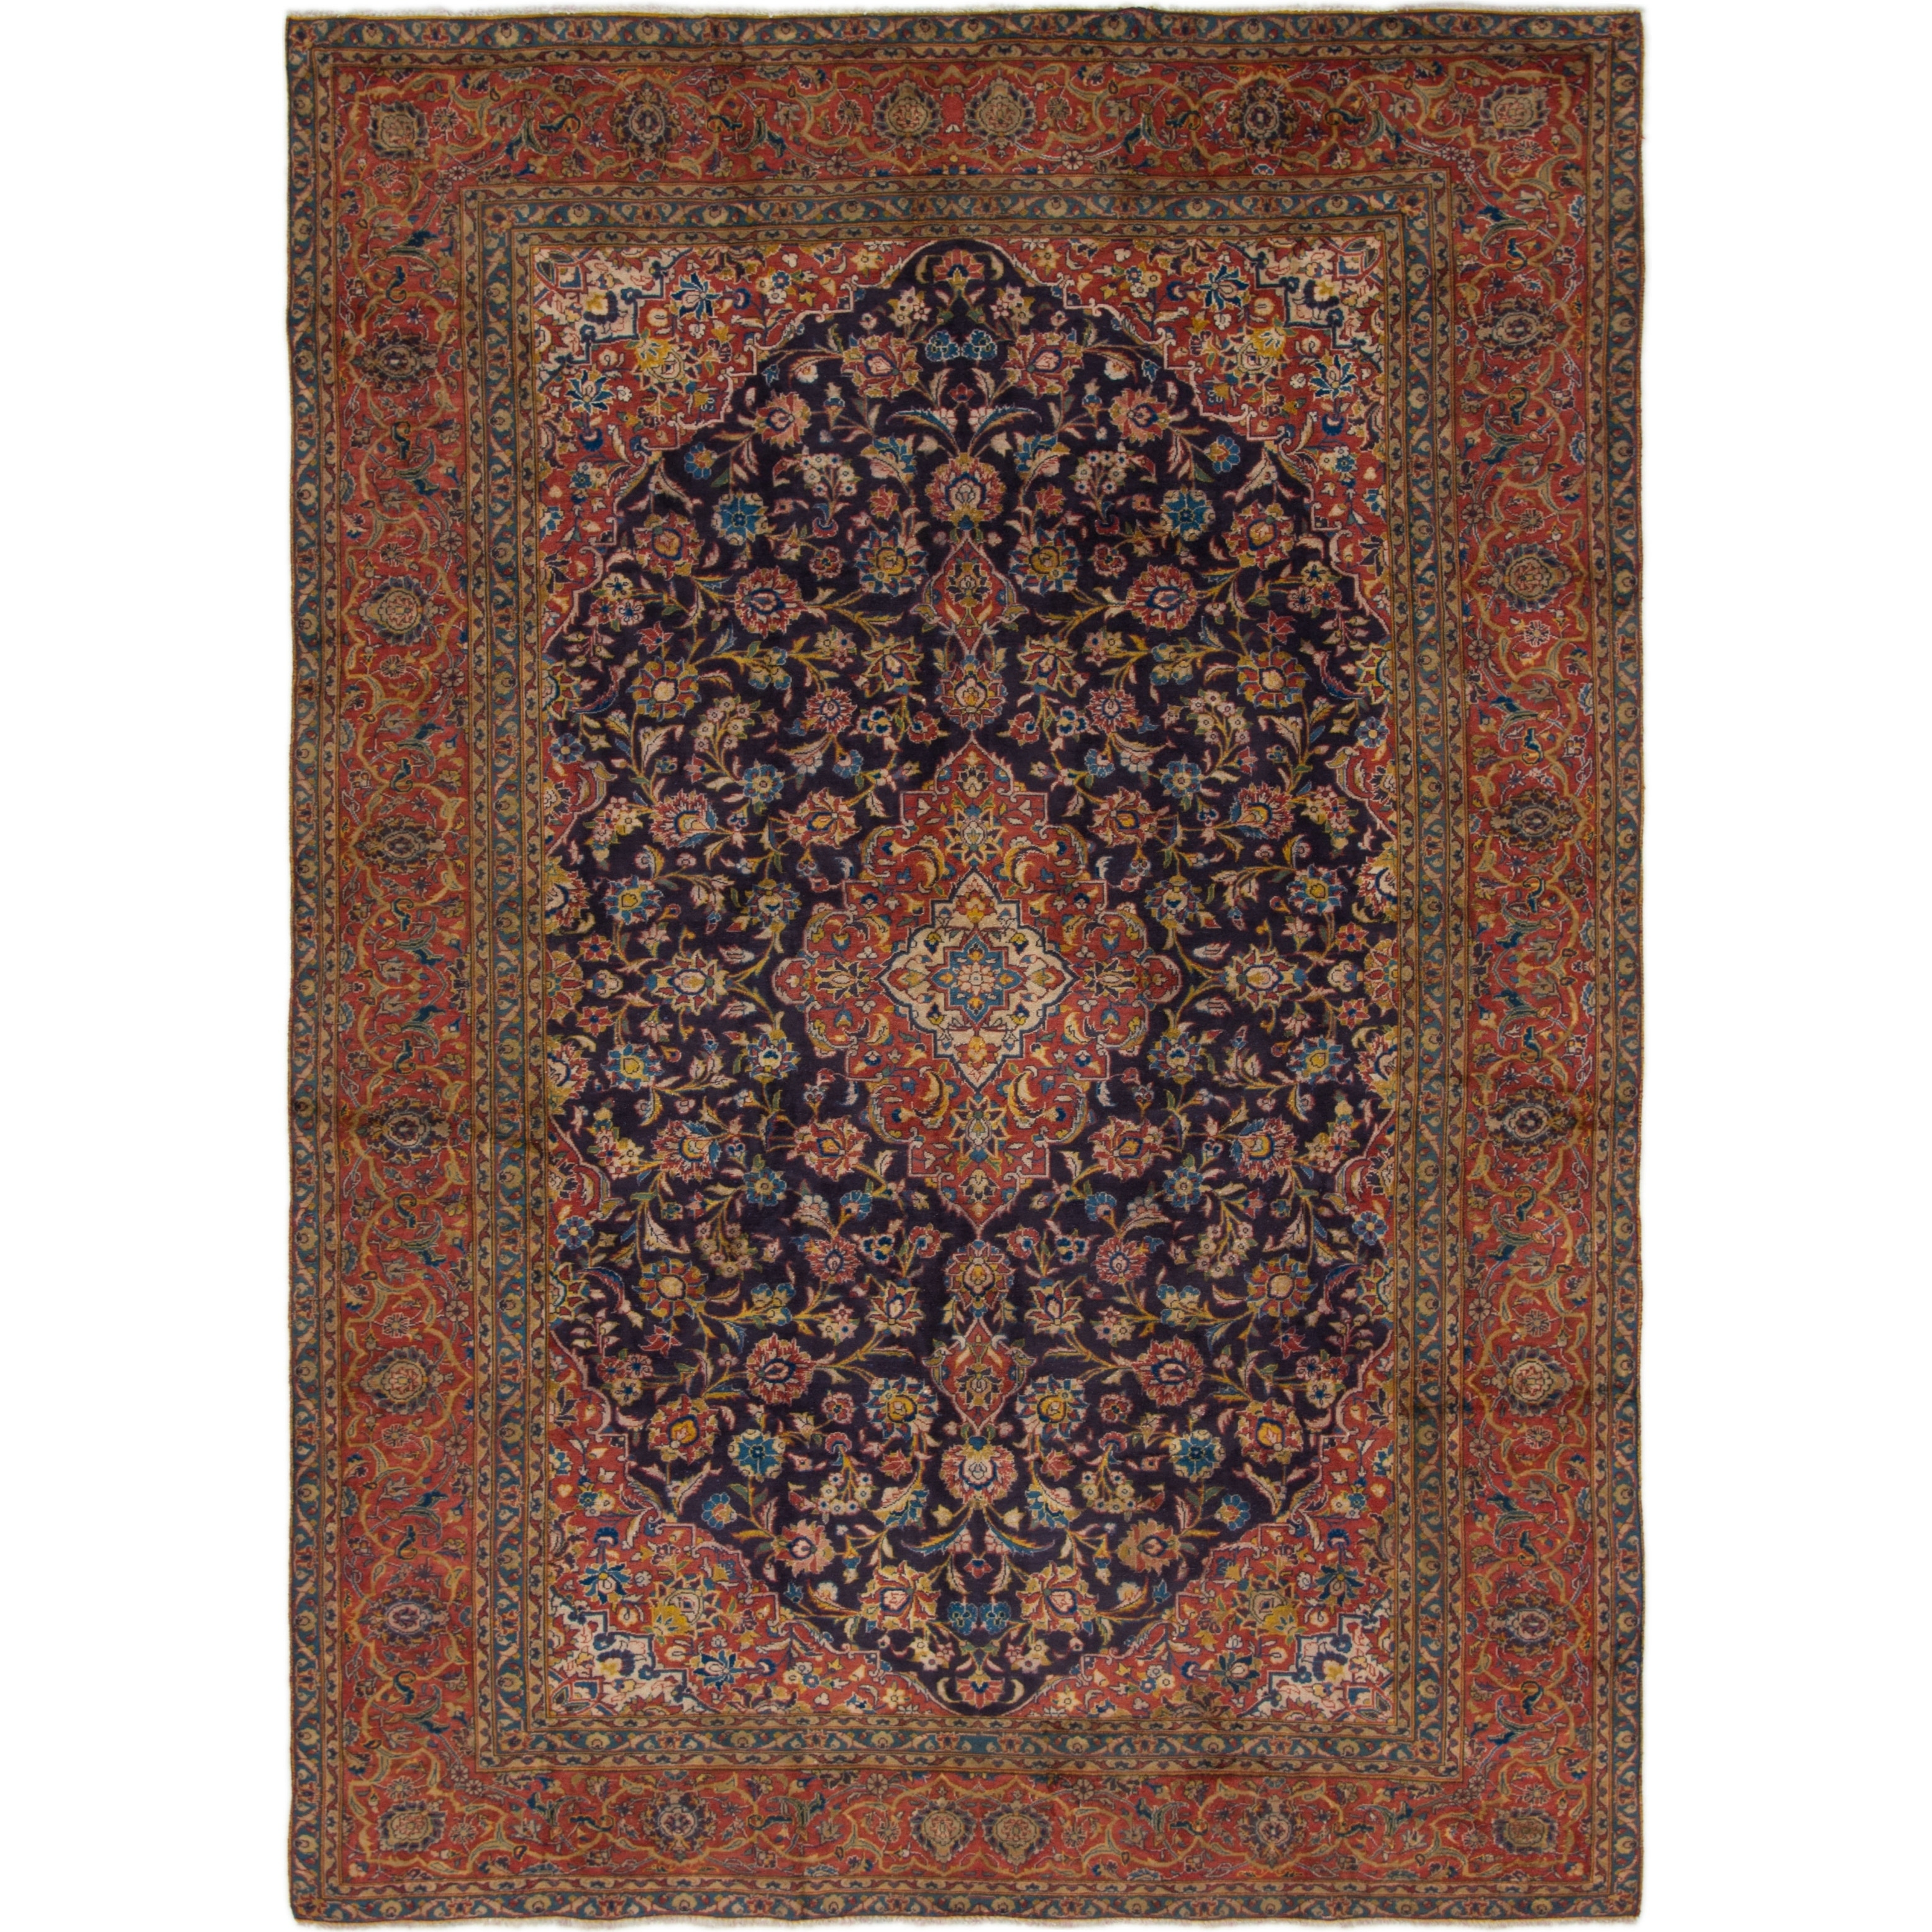 Hand Knotted Kashan Antique Wool Area Rug - 7 10 x 11 (Navy blue - 7 10 x 11)